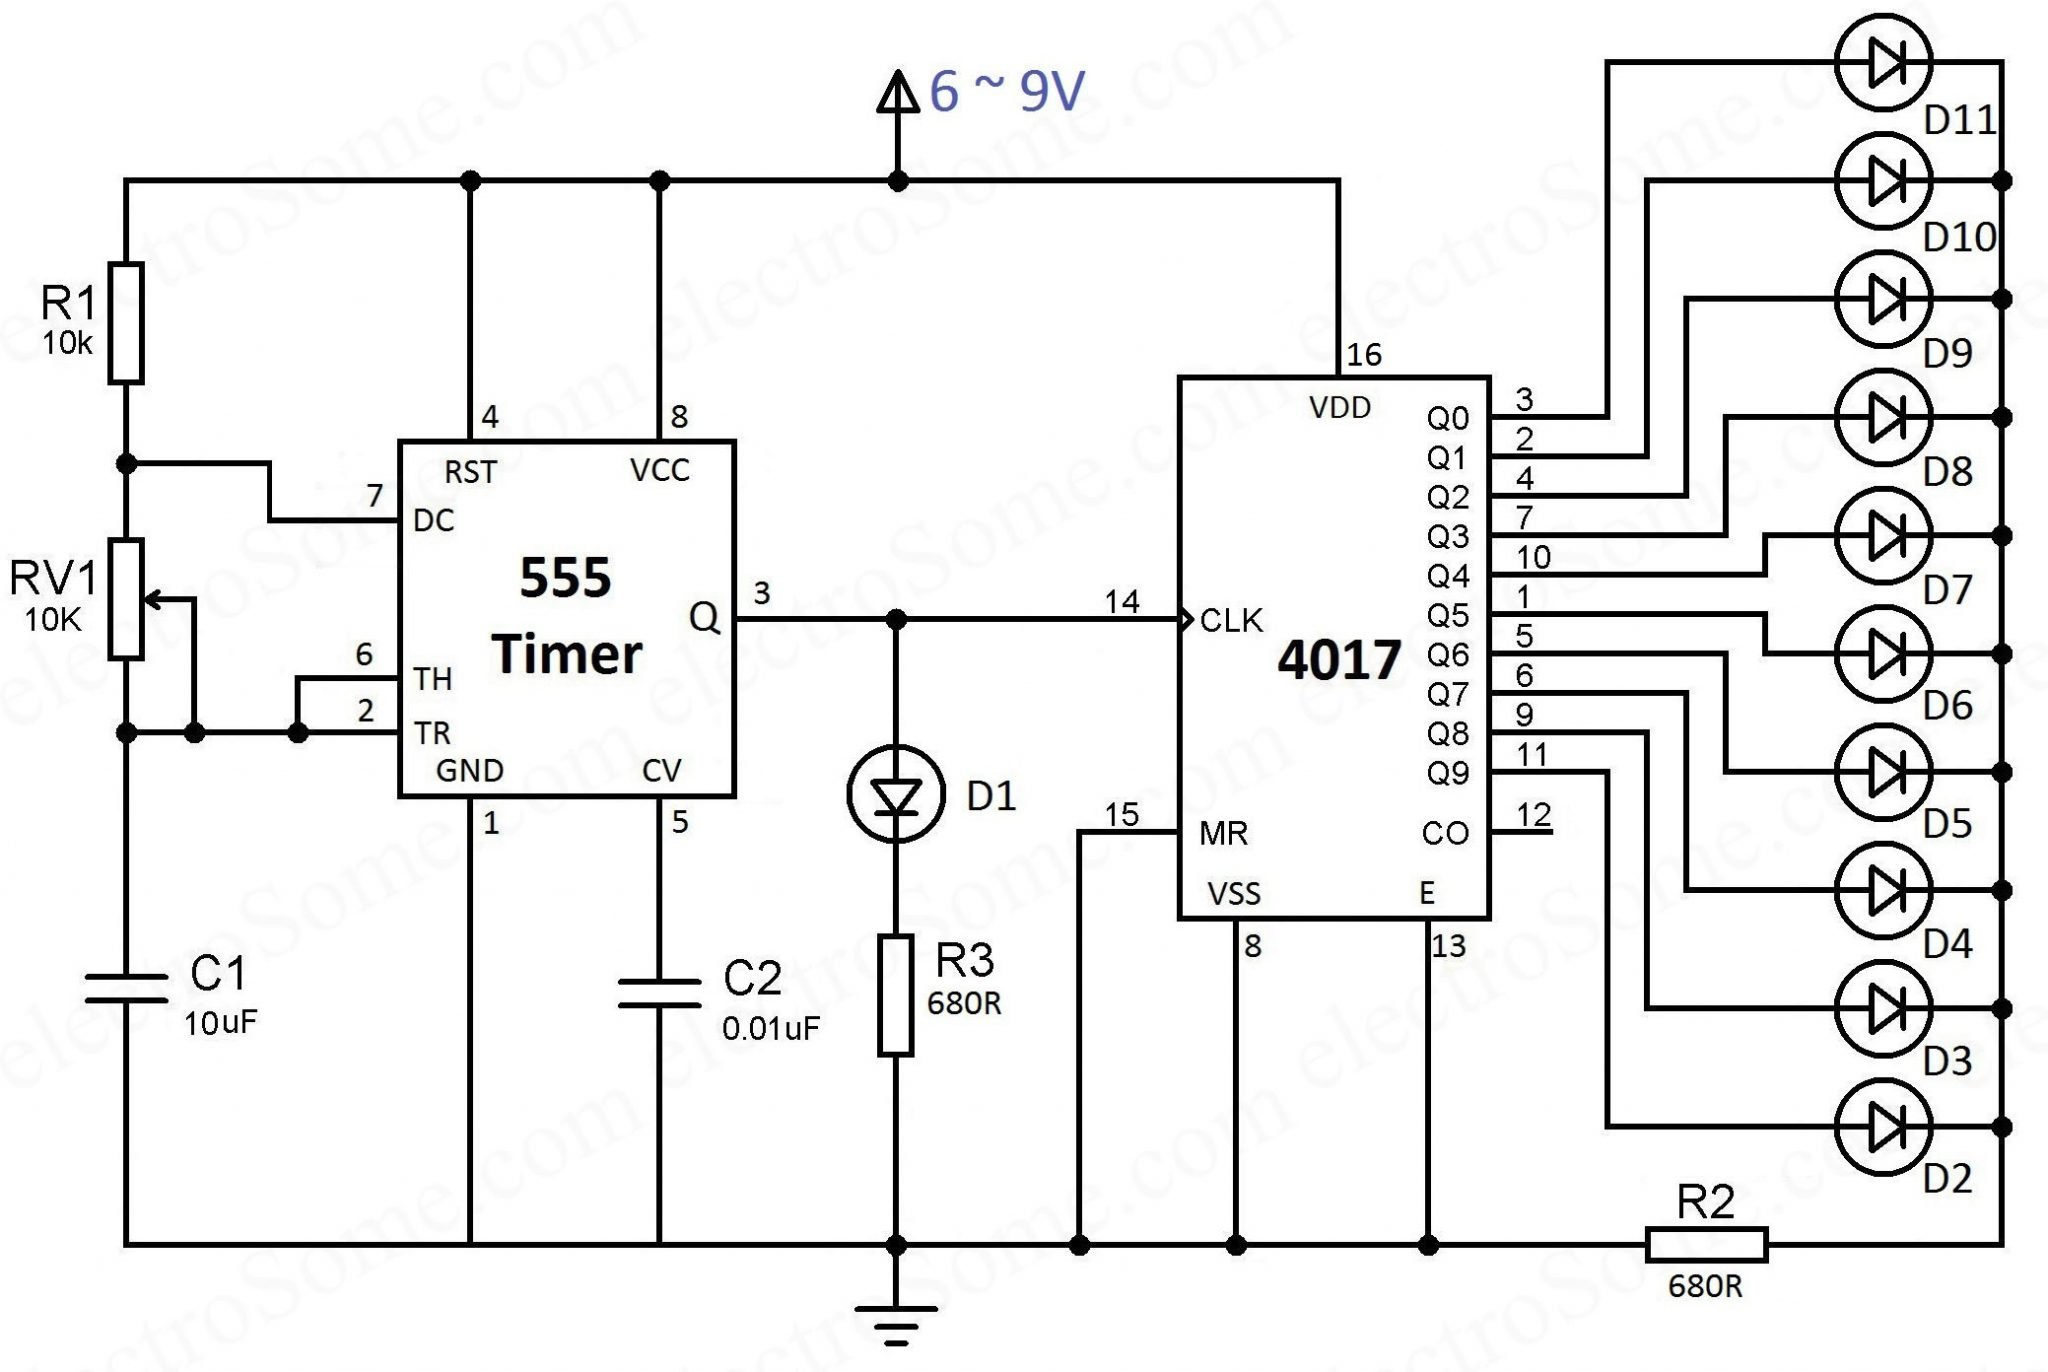 Digital Power Supply Schematics Block Wiring Diagram Explanation Of Delabs Powersupplies Led Chaser Using 4017 Counter And 555 Timer Benchtop Schematic Bench